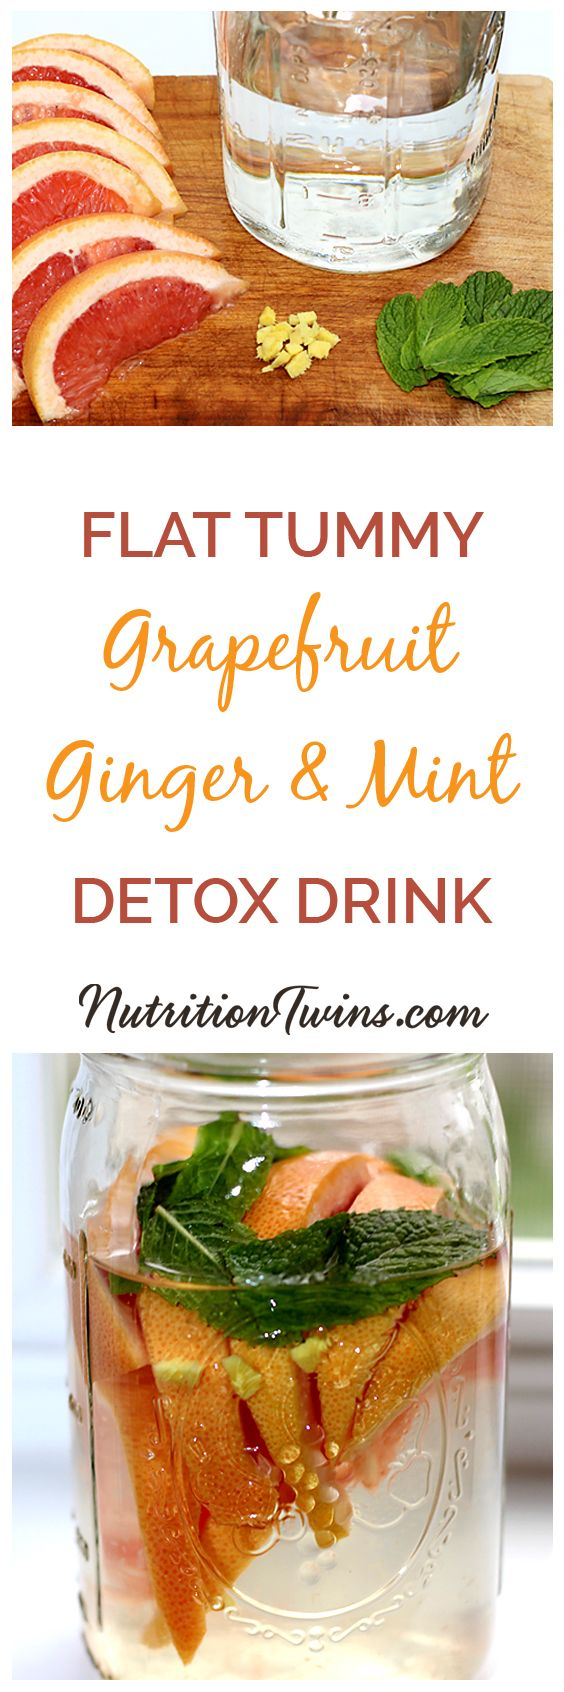 "Grapefruit Ginger Mint ""Detox"" Drink 